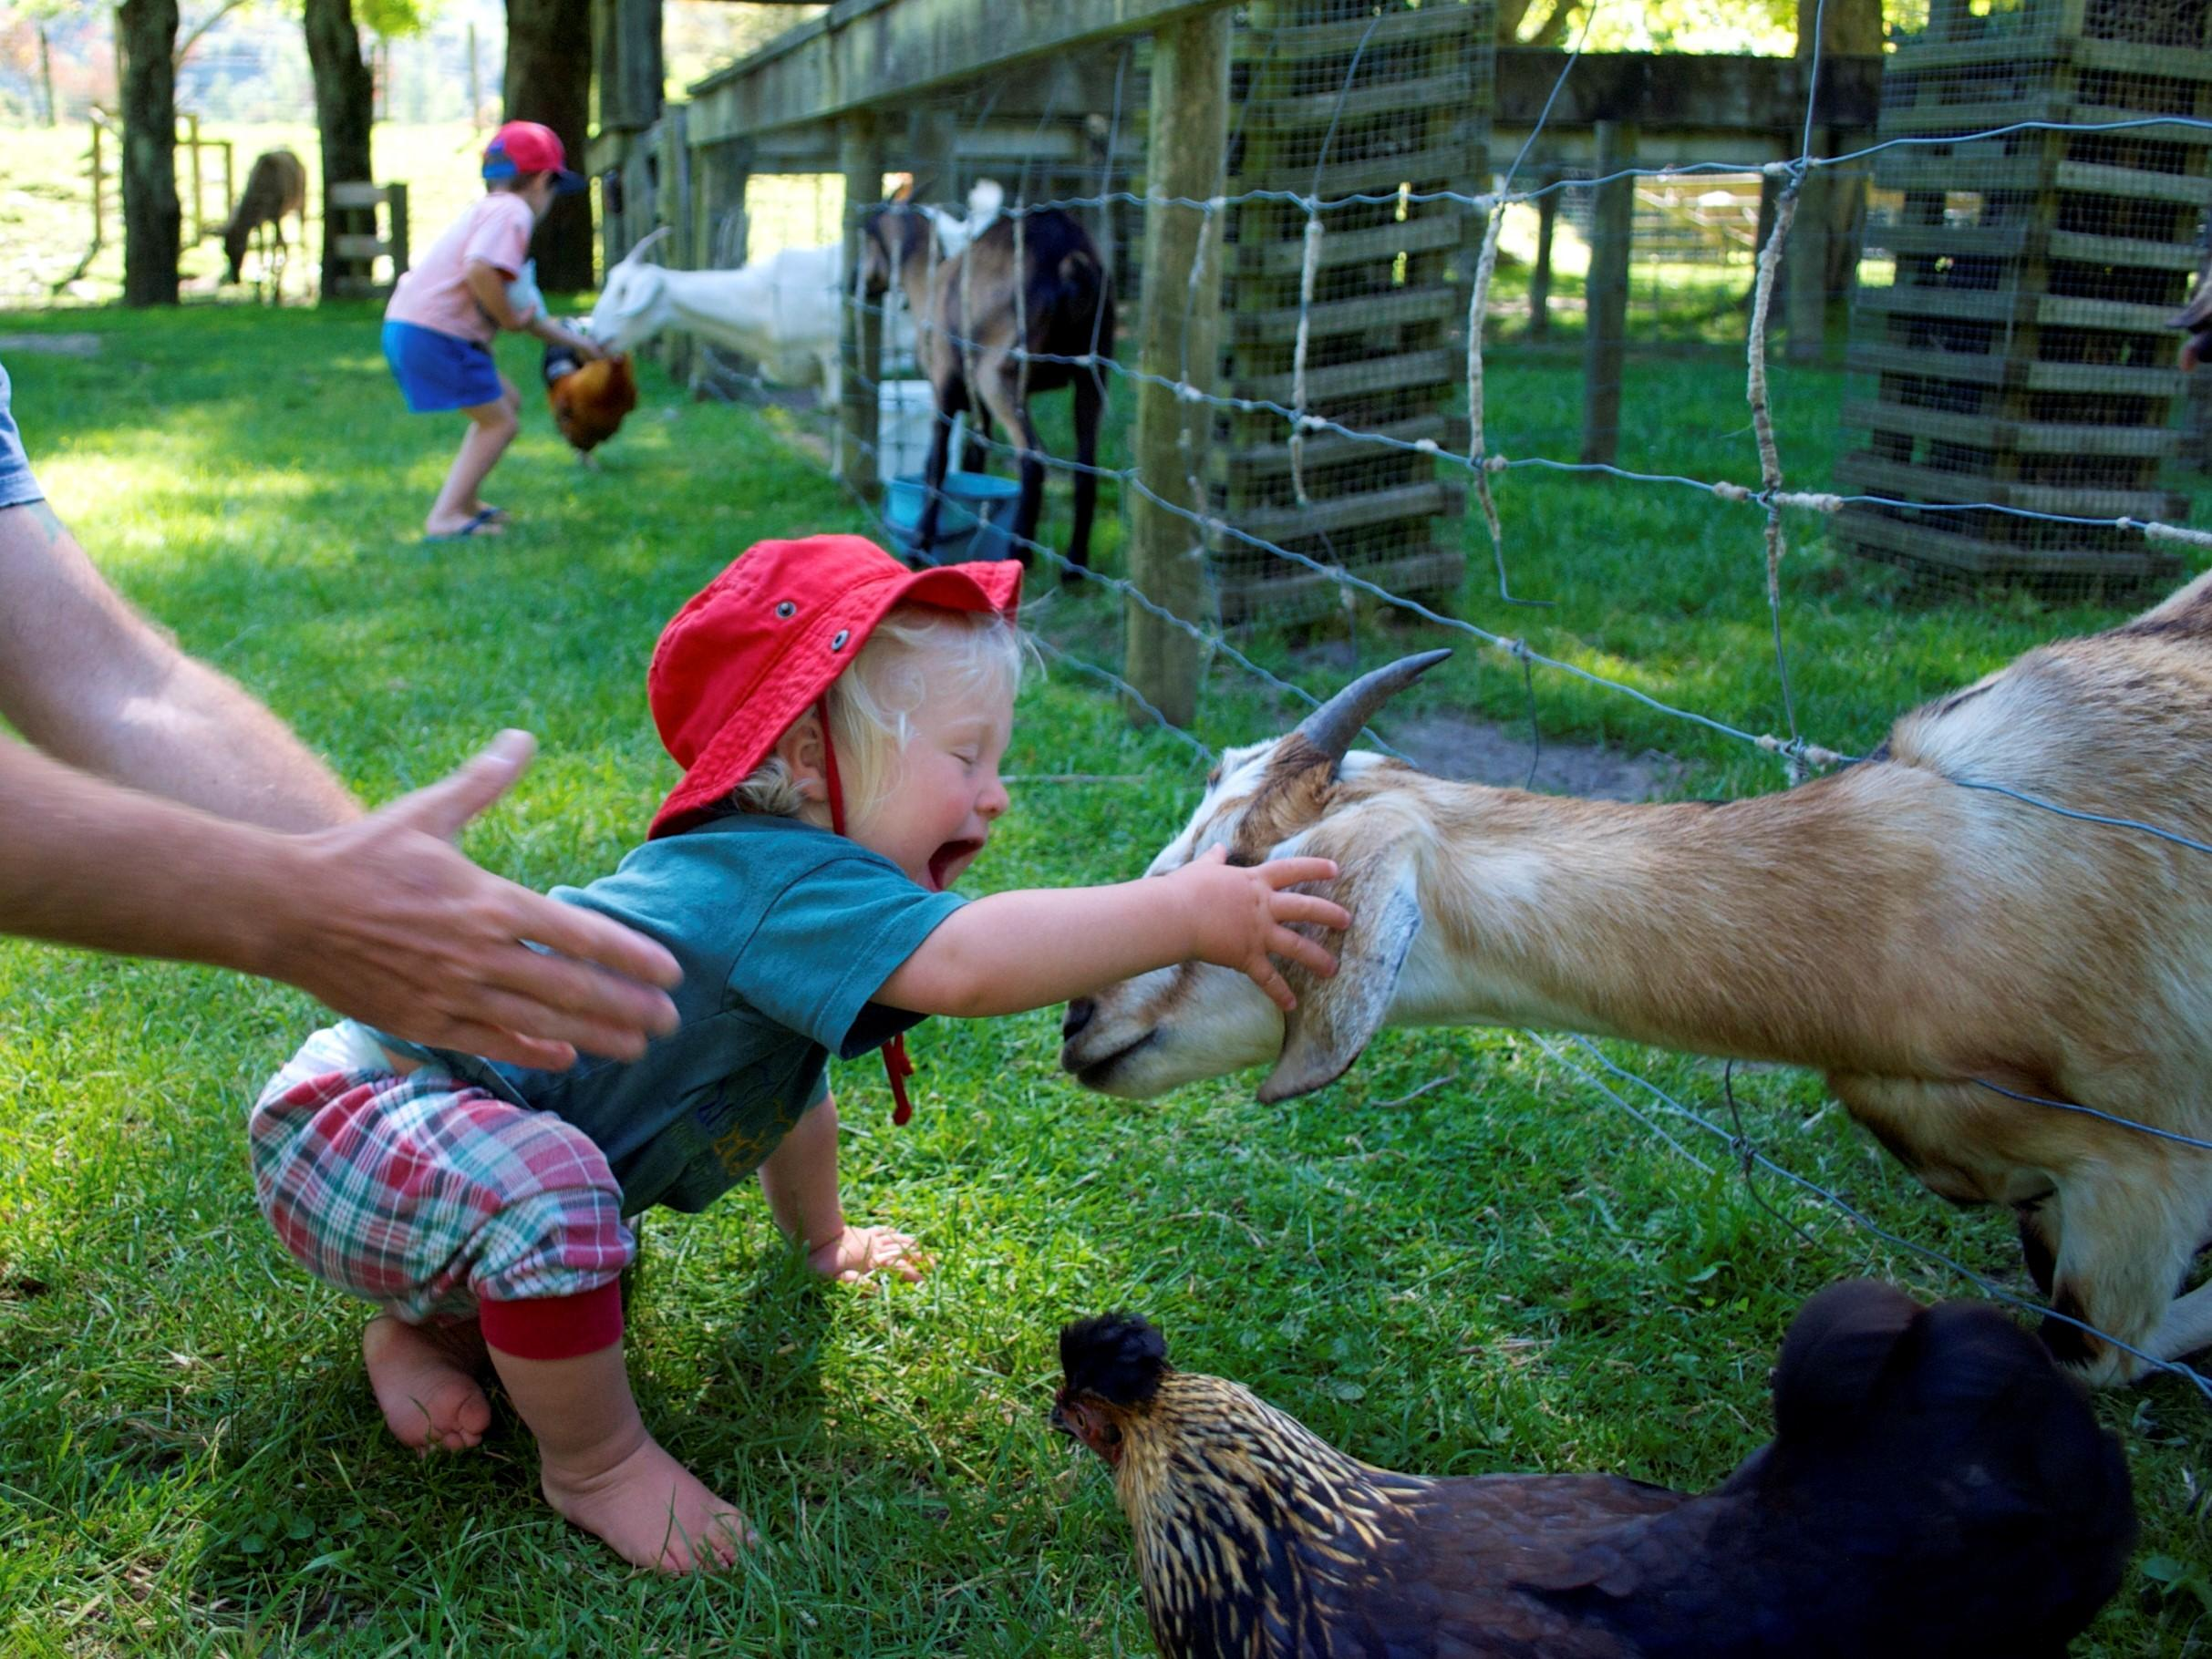 Petting zoos a breeding ground for drug-resistant superbugs, study finds